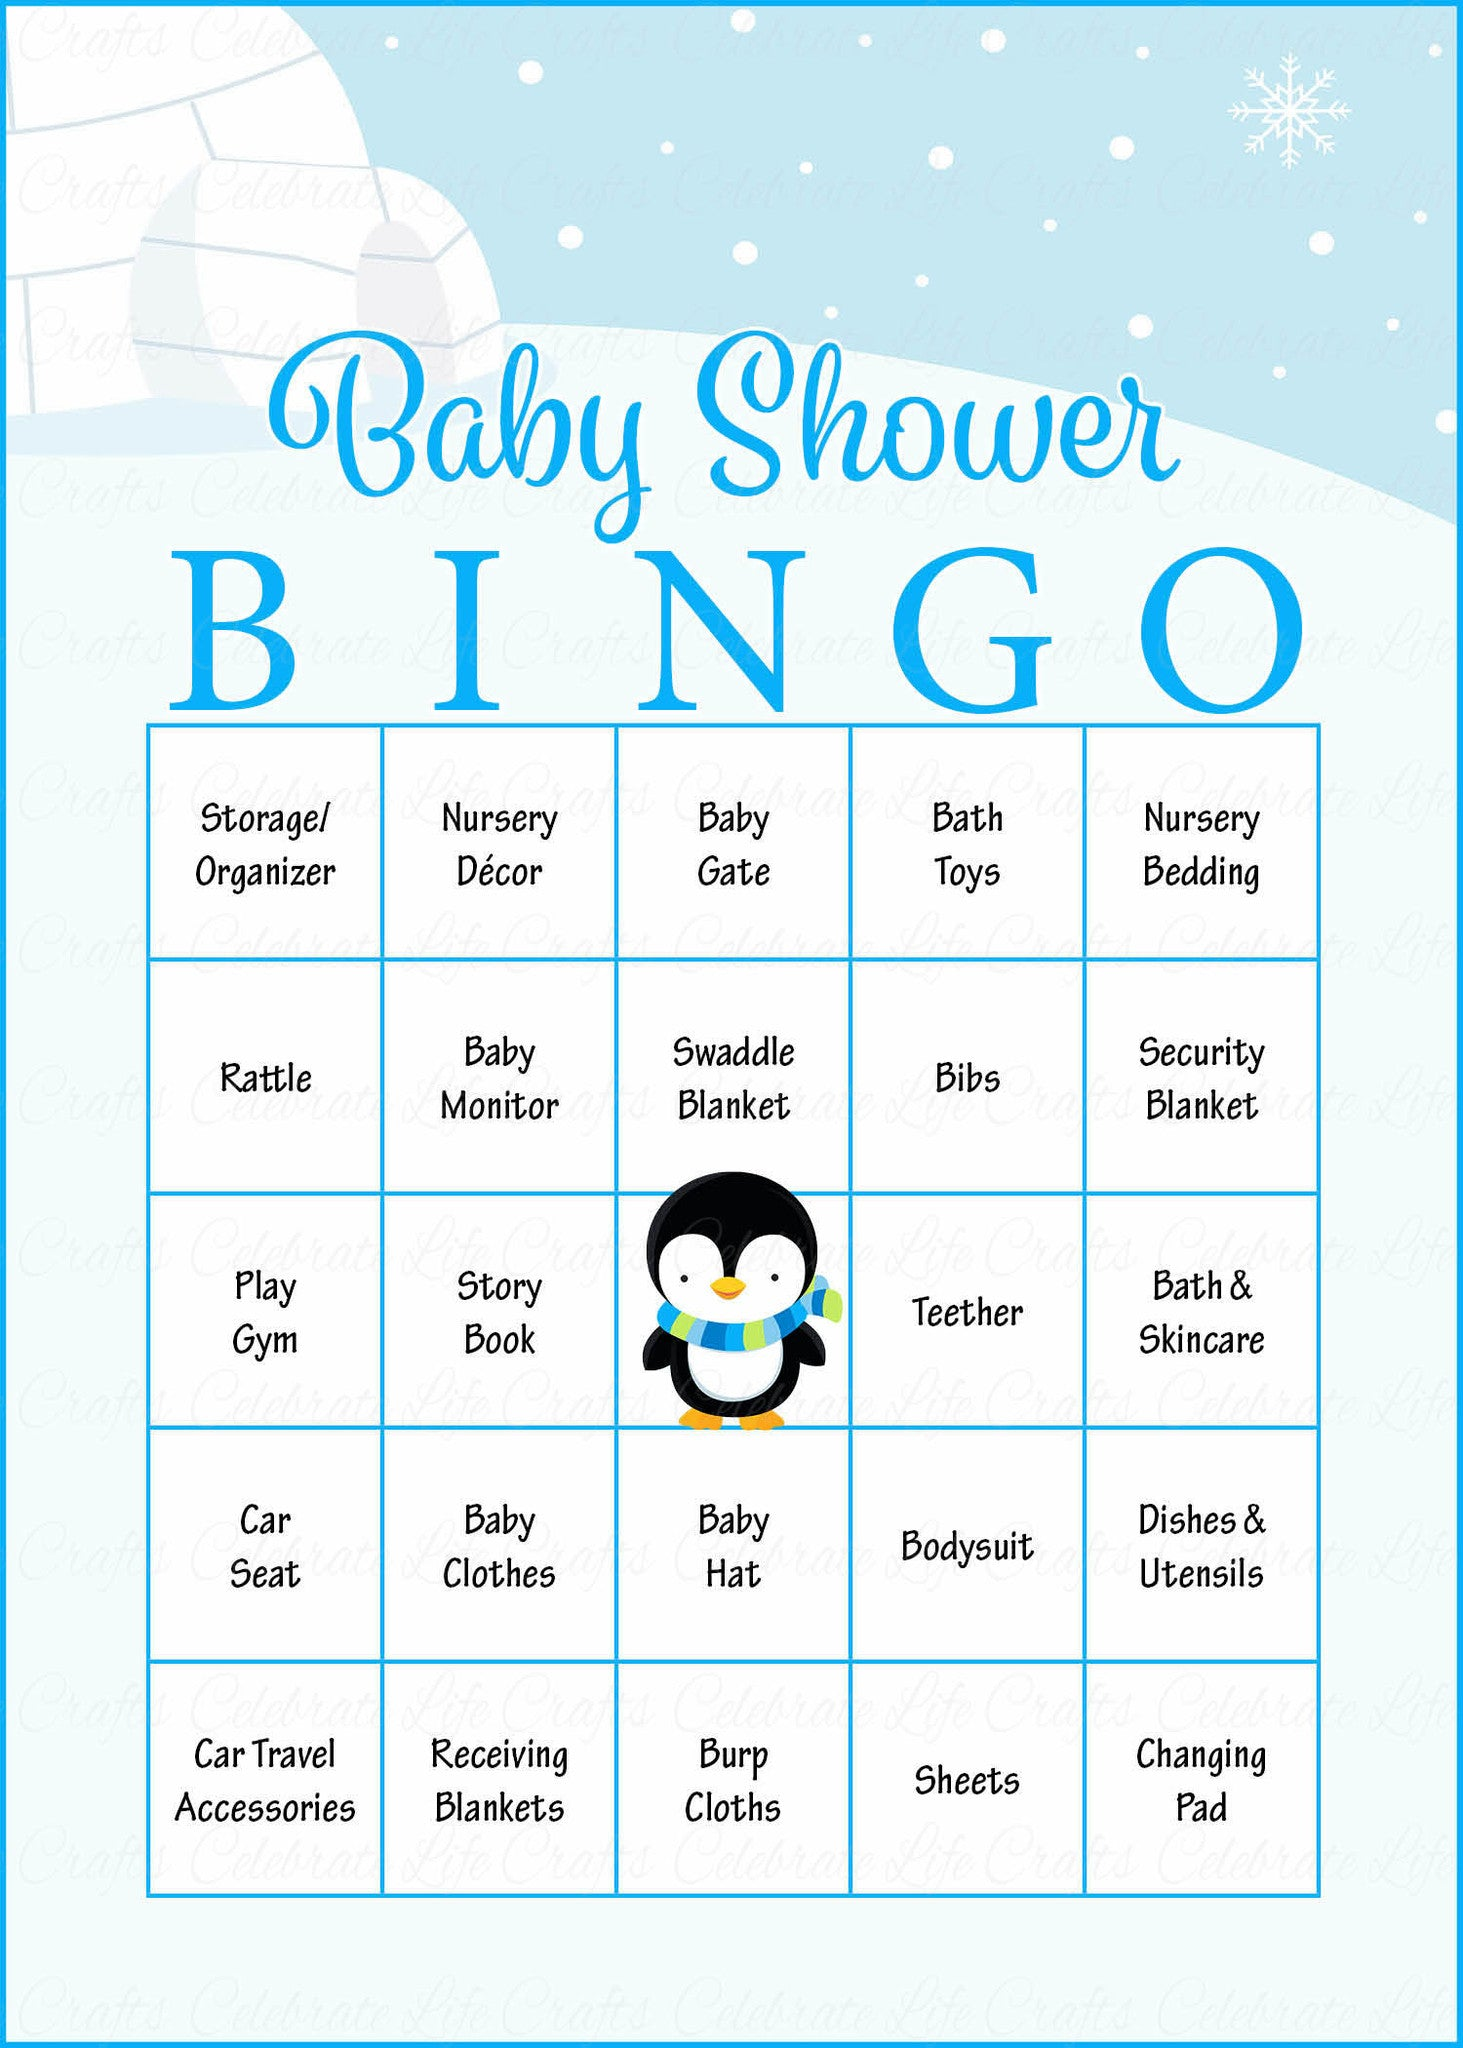 Winter baby shower game download for boy baby bingo celebrate winter baby bingo cards printable download prefilled baby shower game for boy blue penguin solutioingenieria Gallery